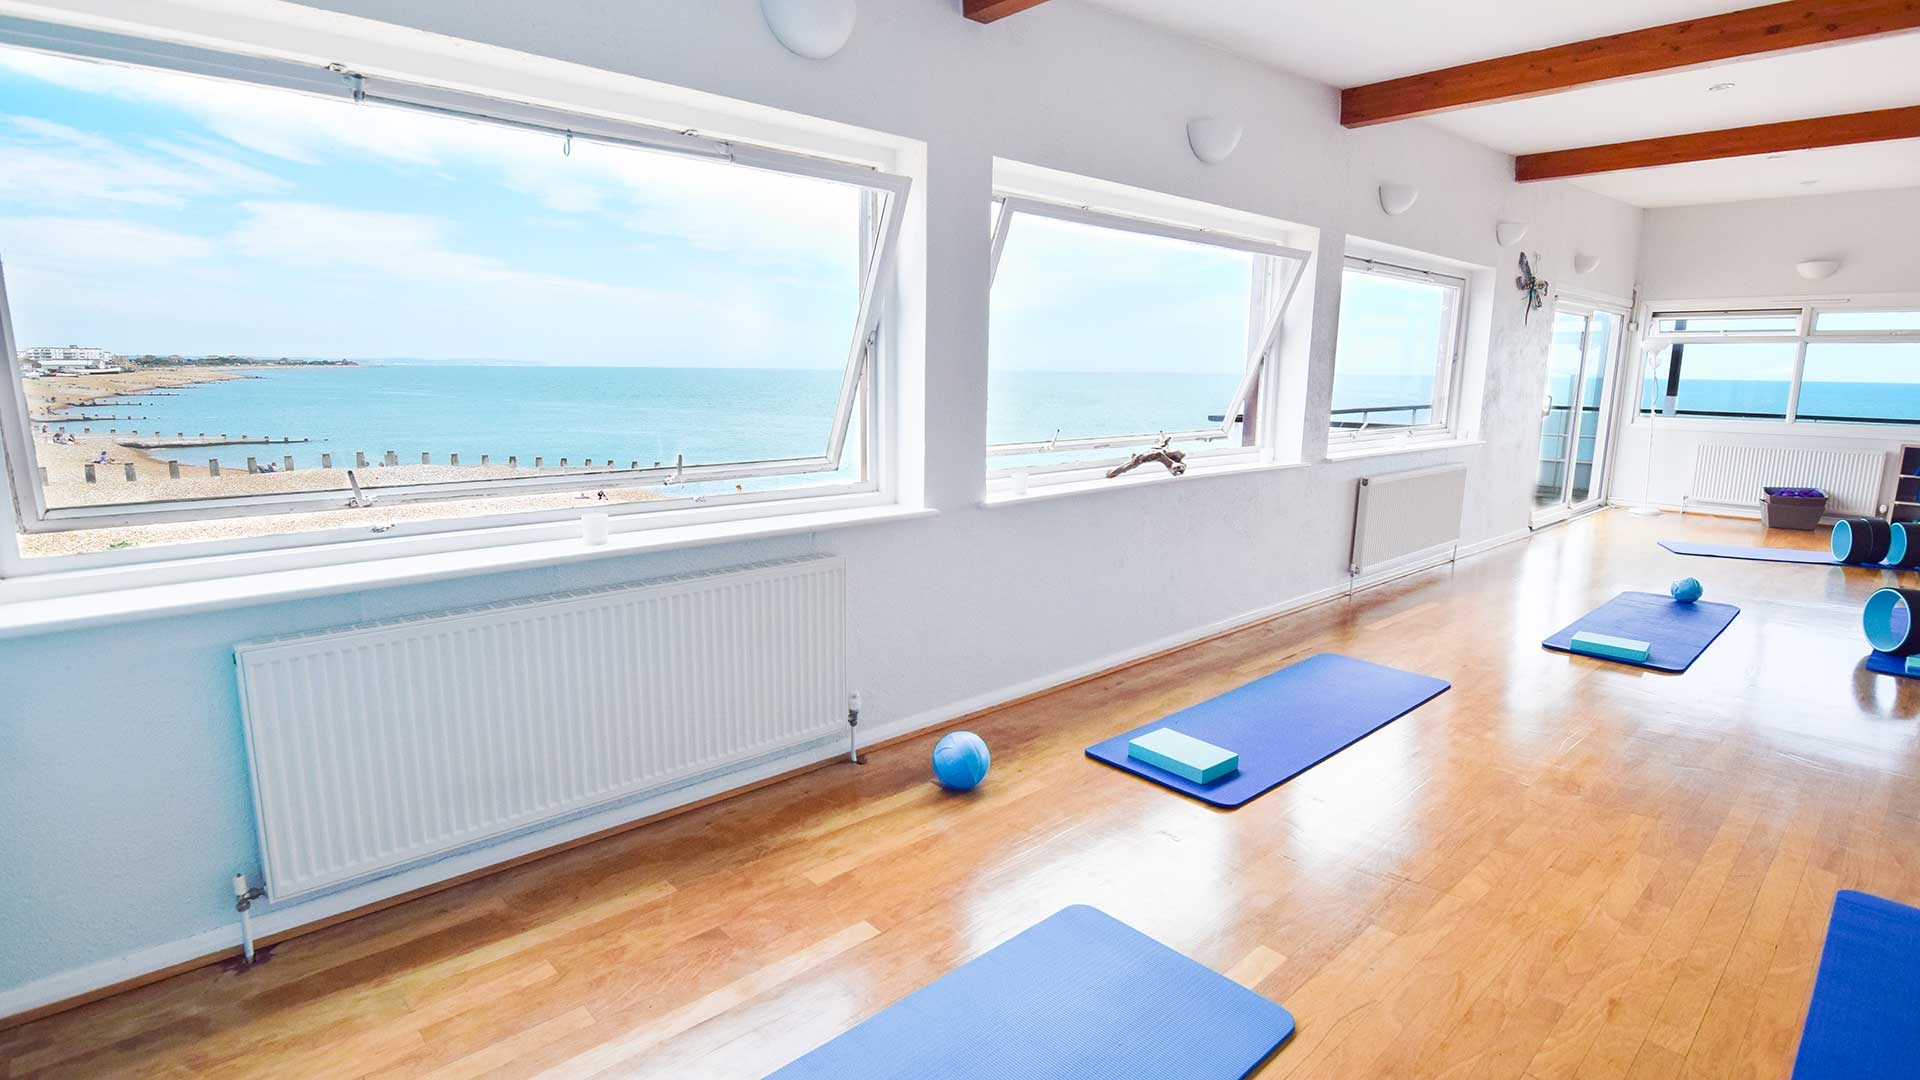 The Natural Fitness & Therapies studio